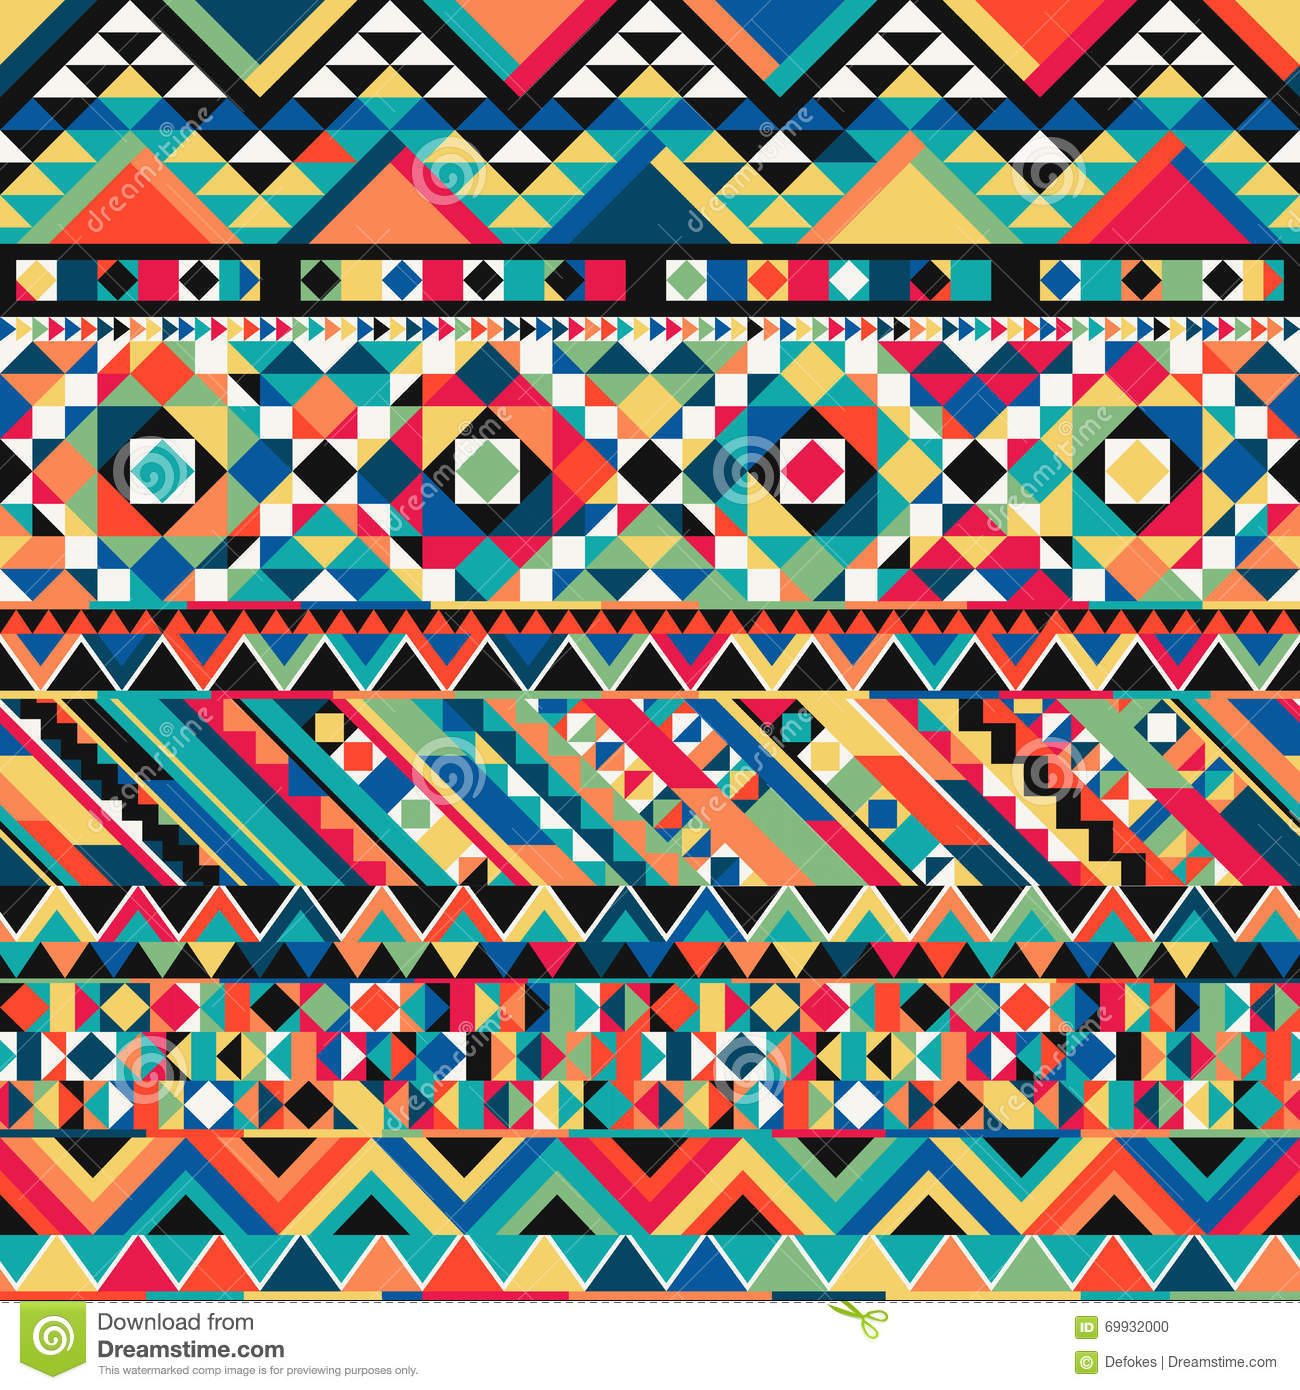 https://thumbs.dreamstime.com/z/ancient-mexican-aztec-colorful-fabric-textile-background-ornamental-vector-seamless-pattern-69932000.jpg